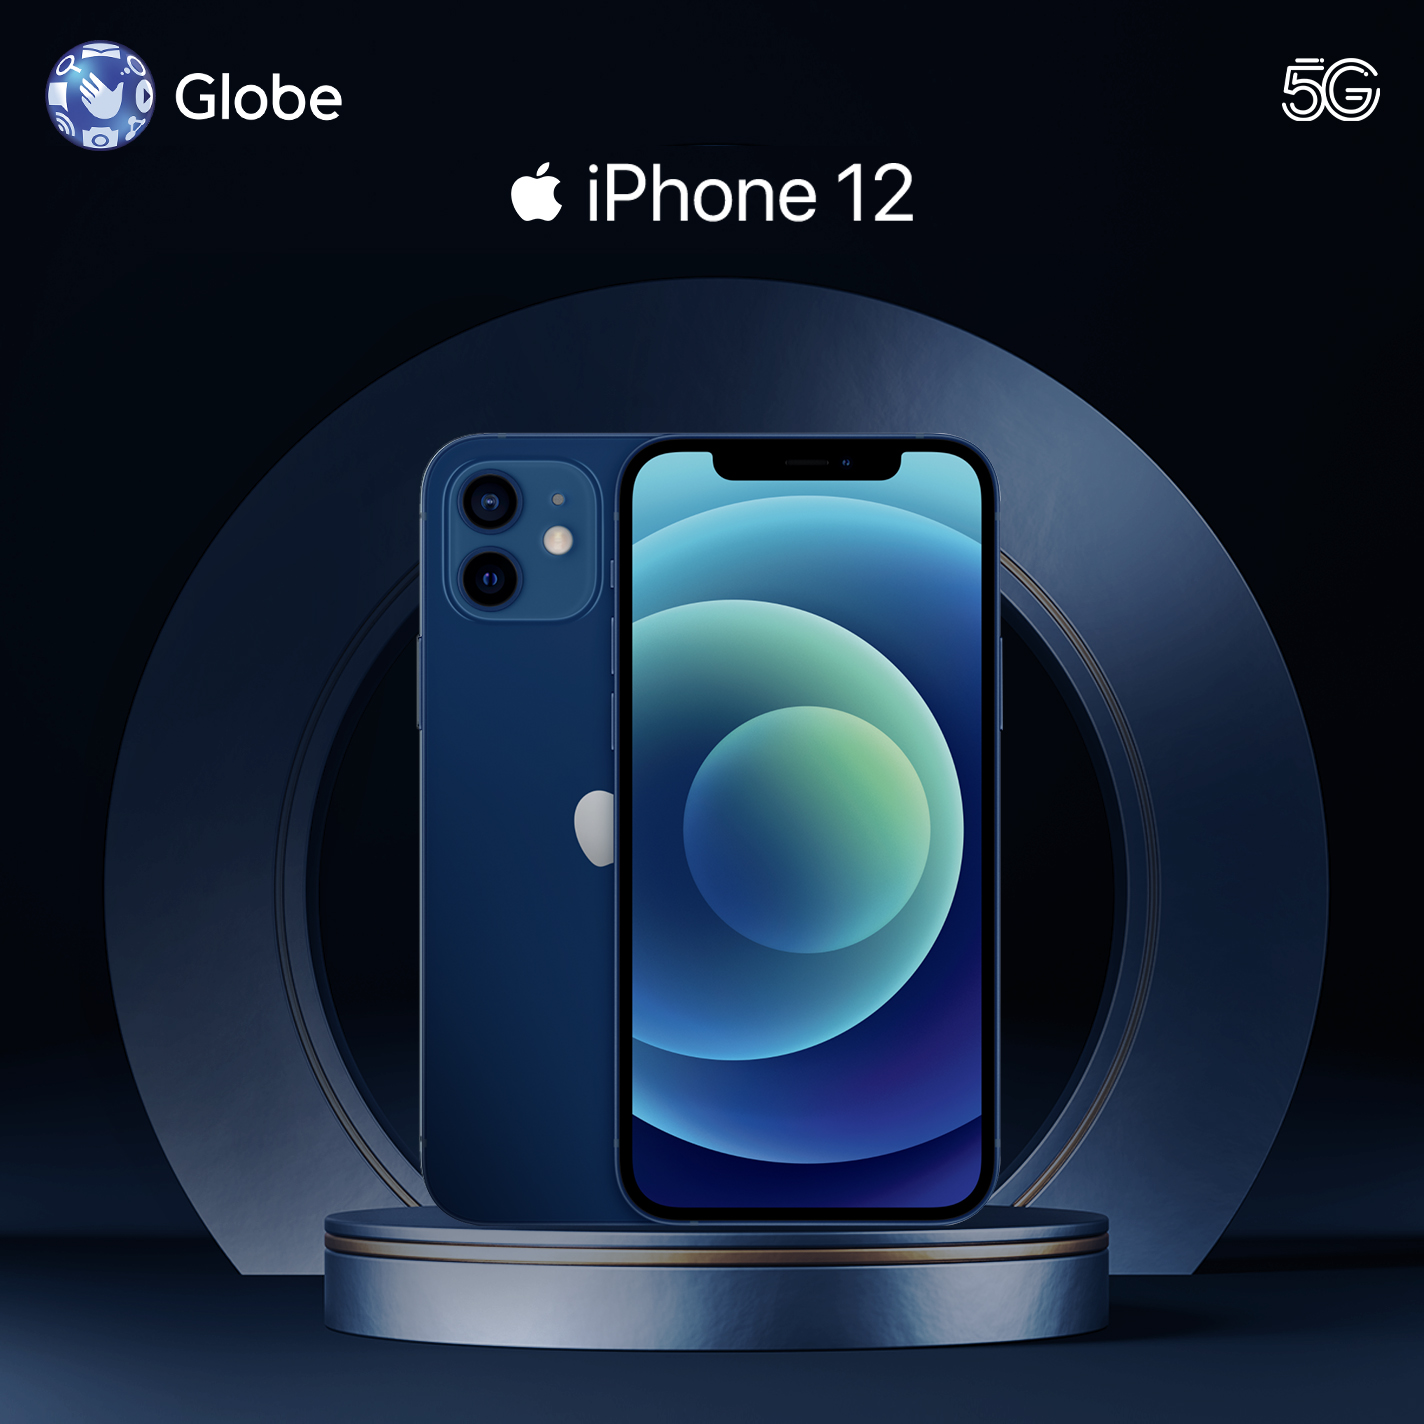 The iPhone 12 is here, and you'll love it more with Globe 5G